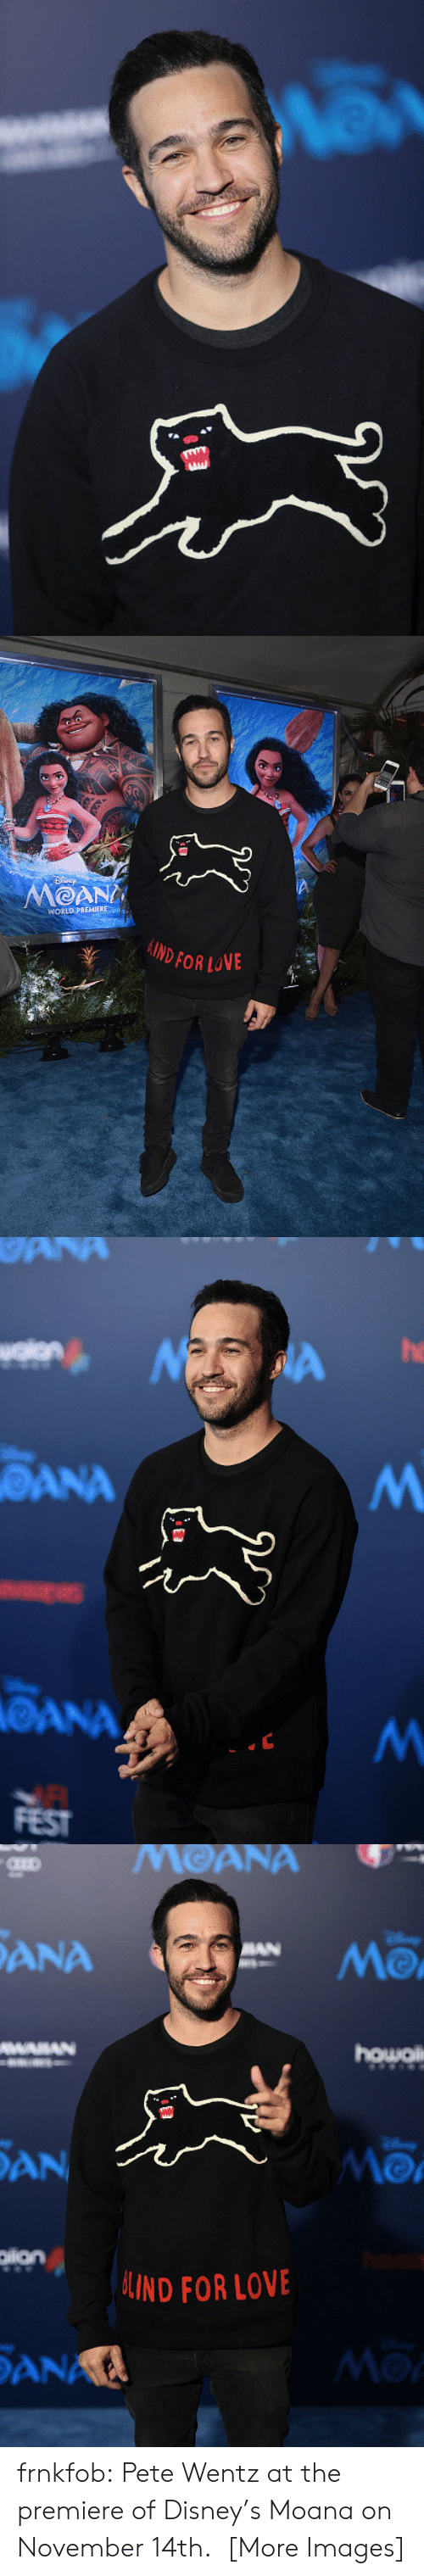 Disney, Love, and Tumblr: WORLD PREMIERE  DFOR LOVE   he  ANA  OANA  FEST   DANA  ANA  MO  AN  IND FOR LOVE  AN  Mo frnkfob:   Pete Wentz at the premiere of Disney's Moana on November 14th.  [More Images]